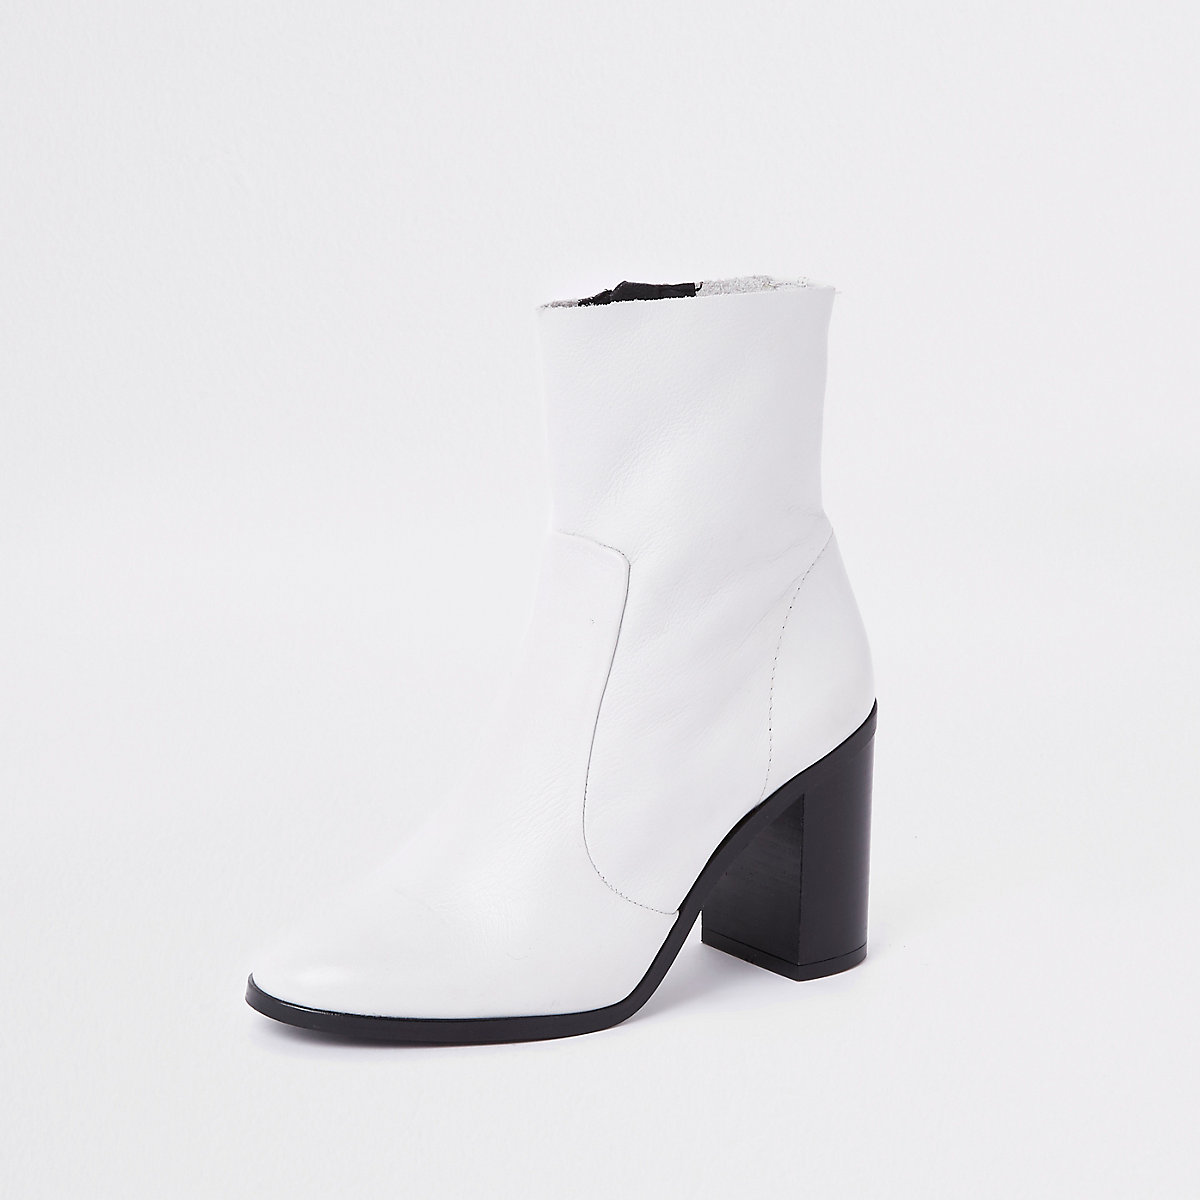 White Leather Sock Block Heel Ankle Boots Boots Shoes Boots